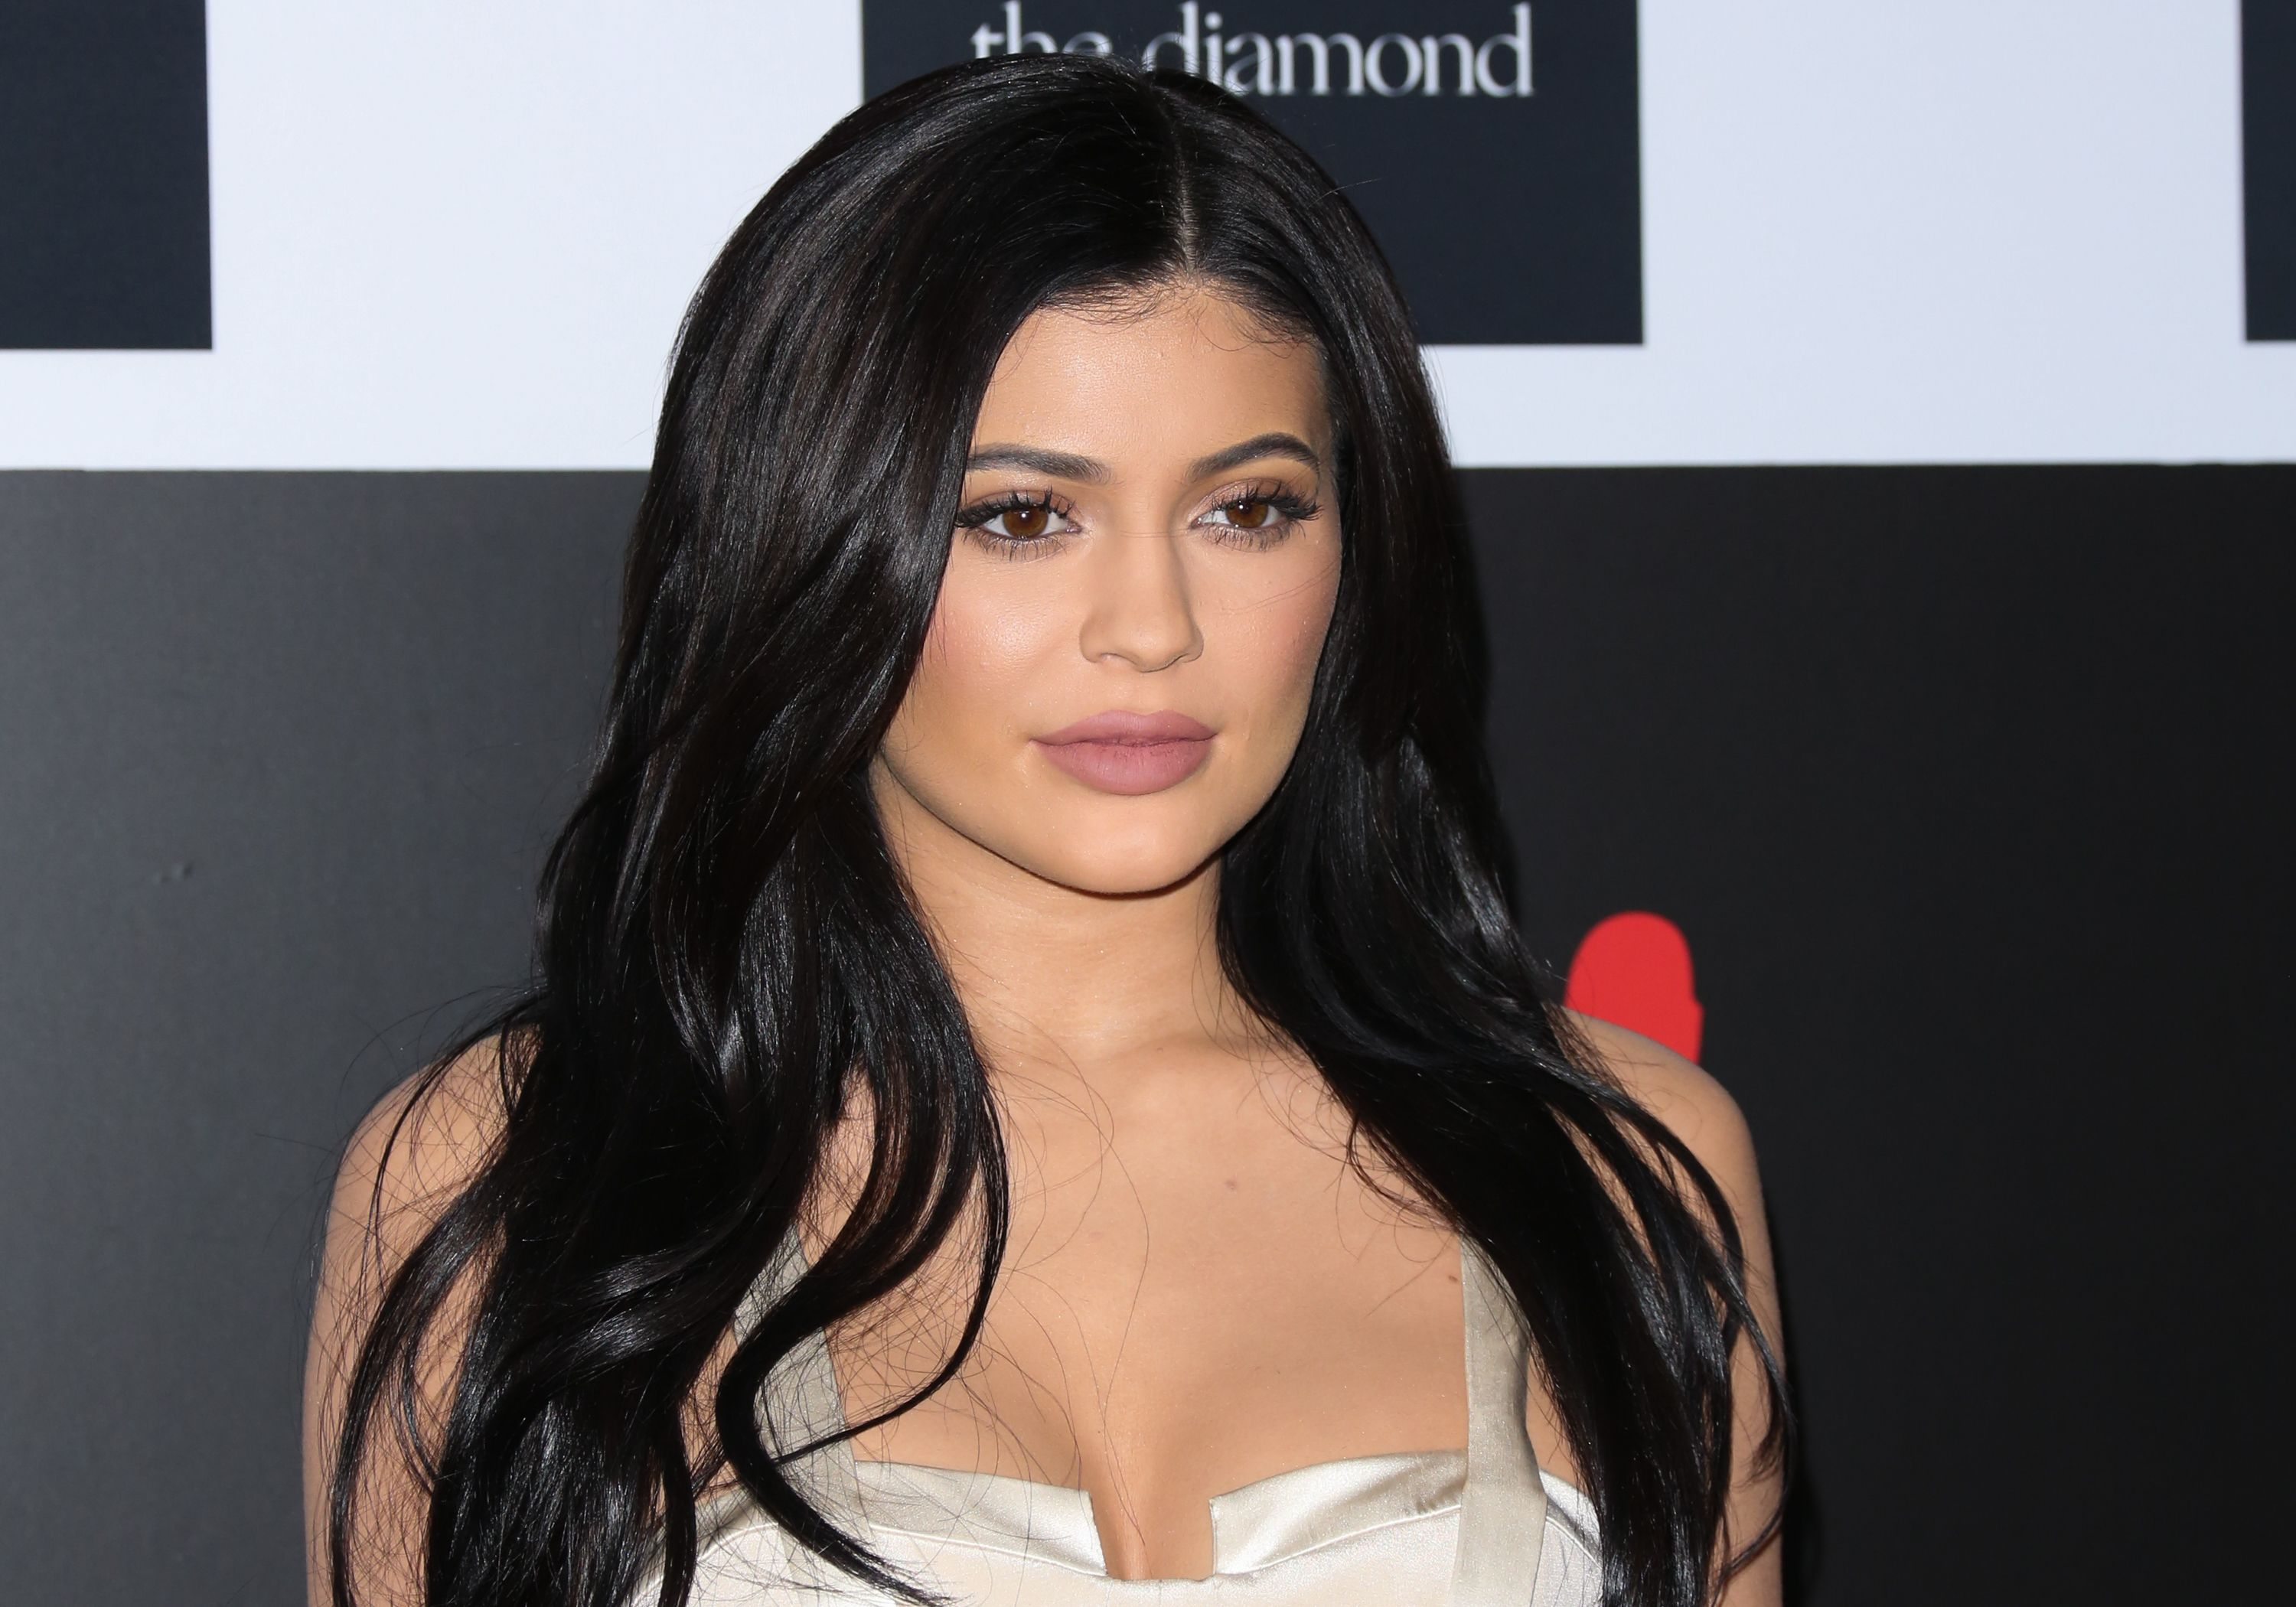 Kylie Jenner just ditched all her hair extensions - and it's a lewk